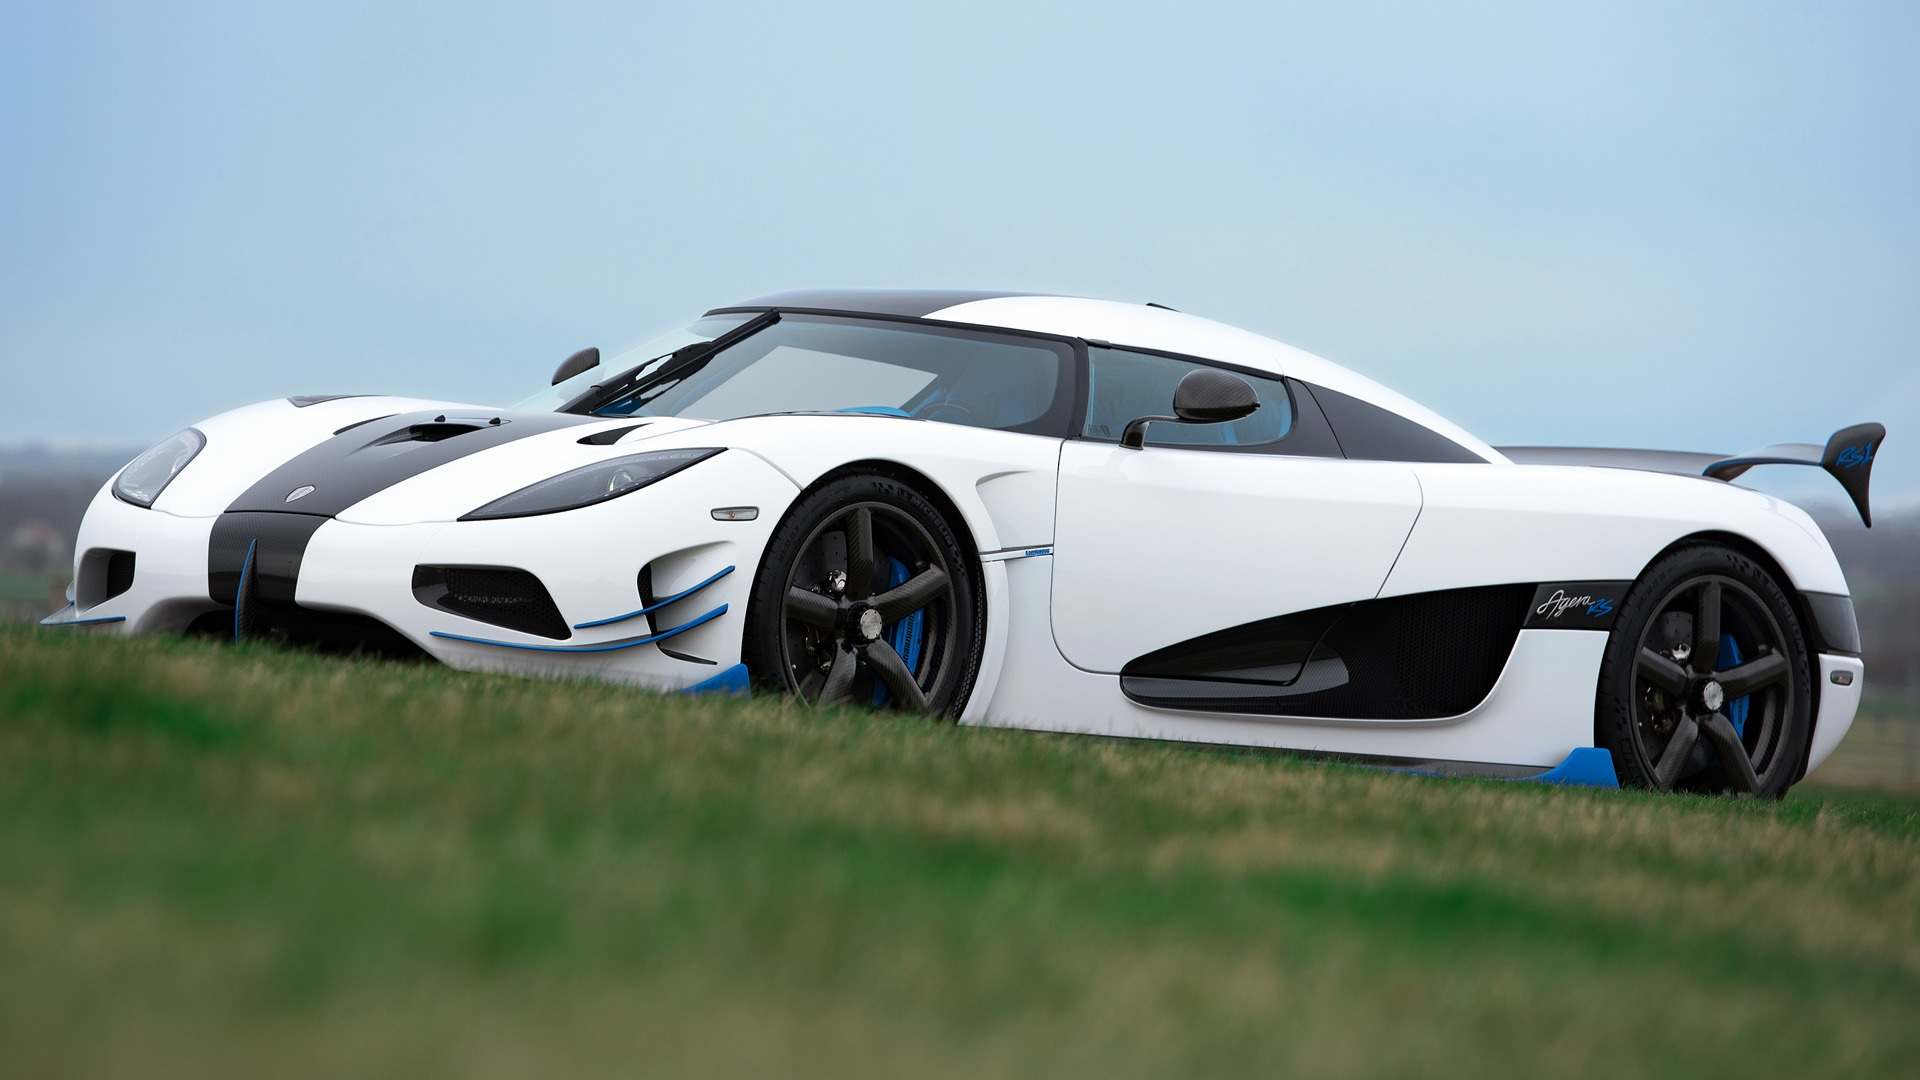 Koenigsegg-Limited-Edition-Car-Wallpaper-Pics-Photos